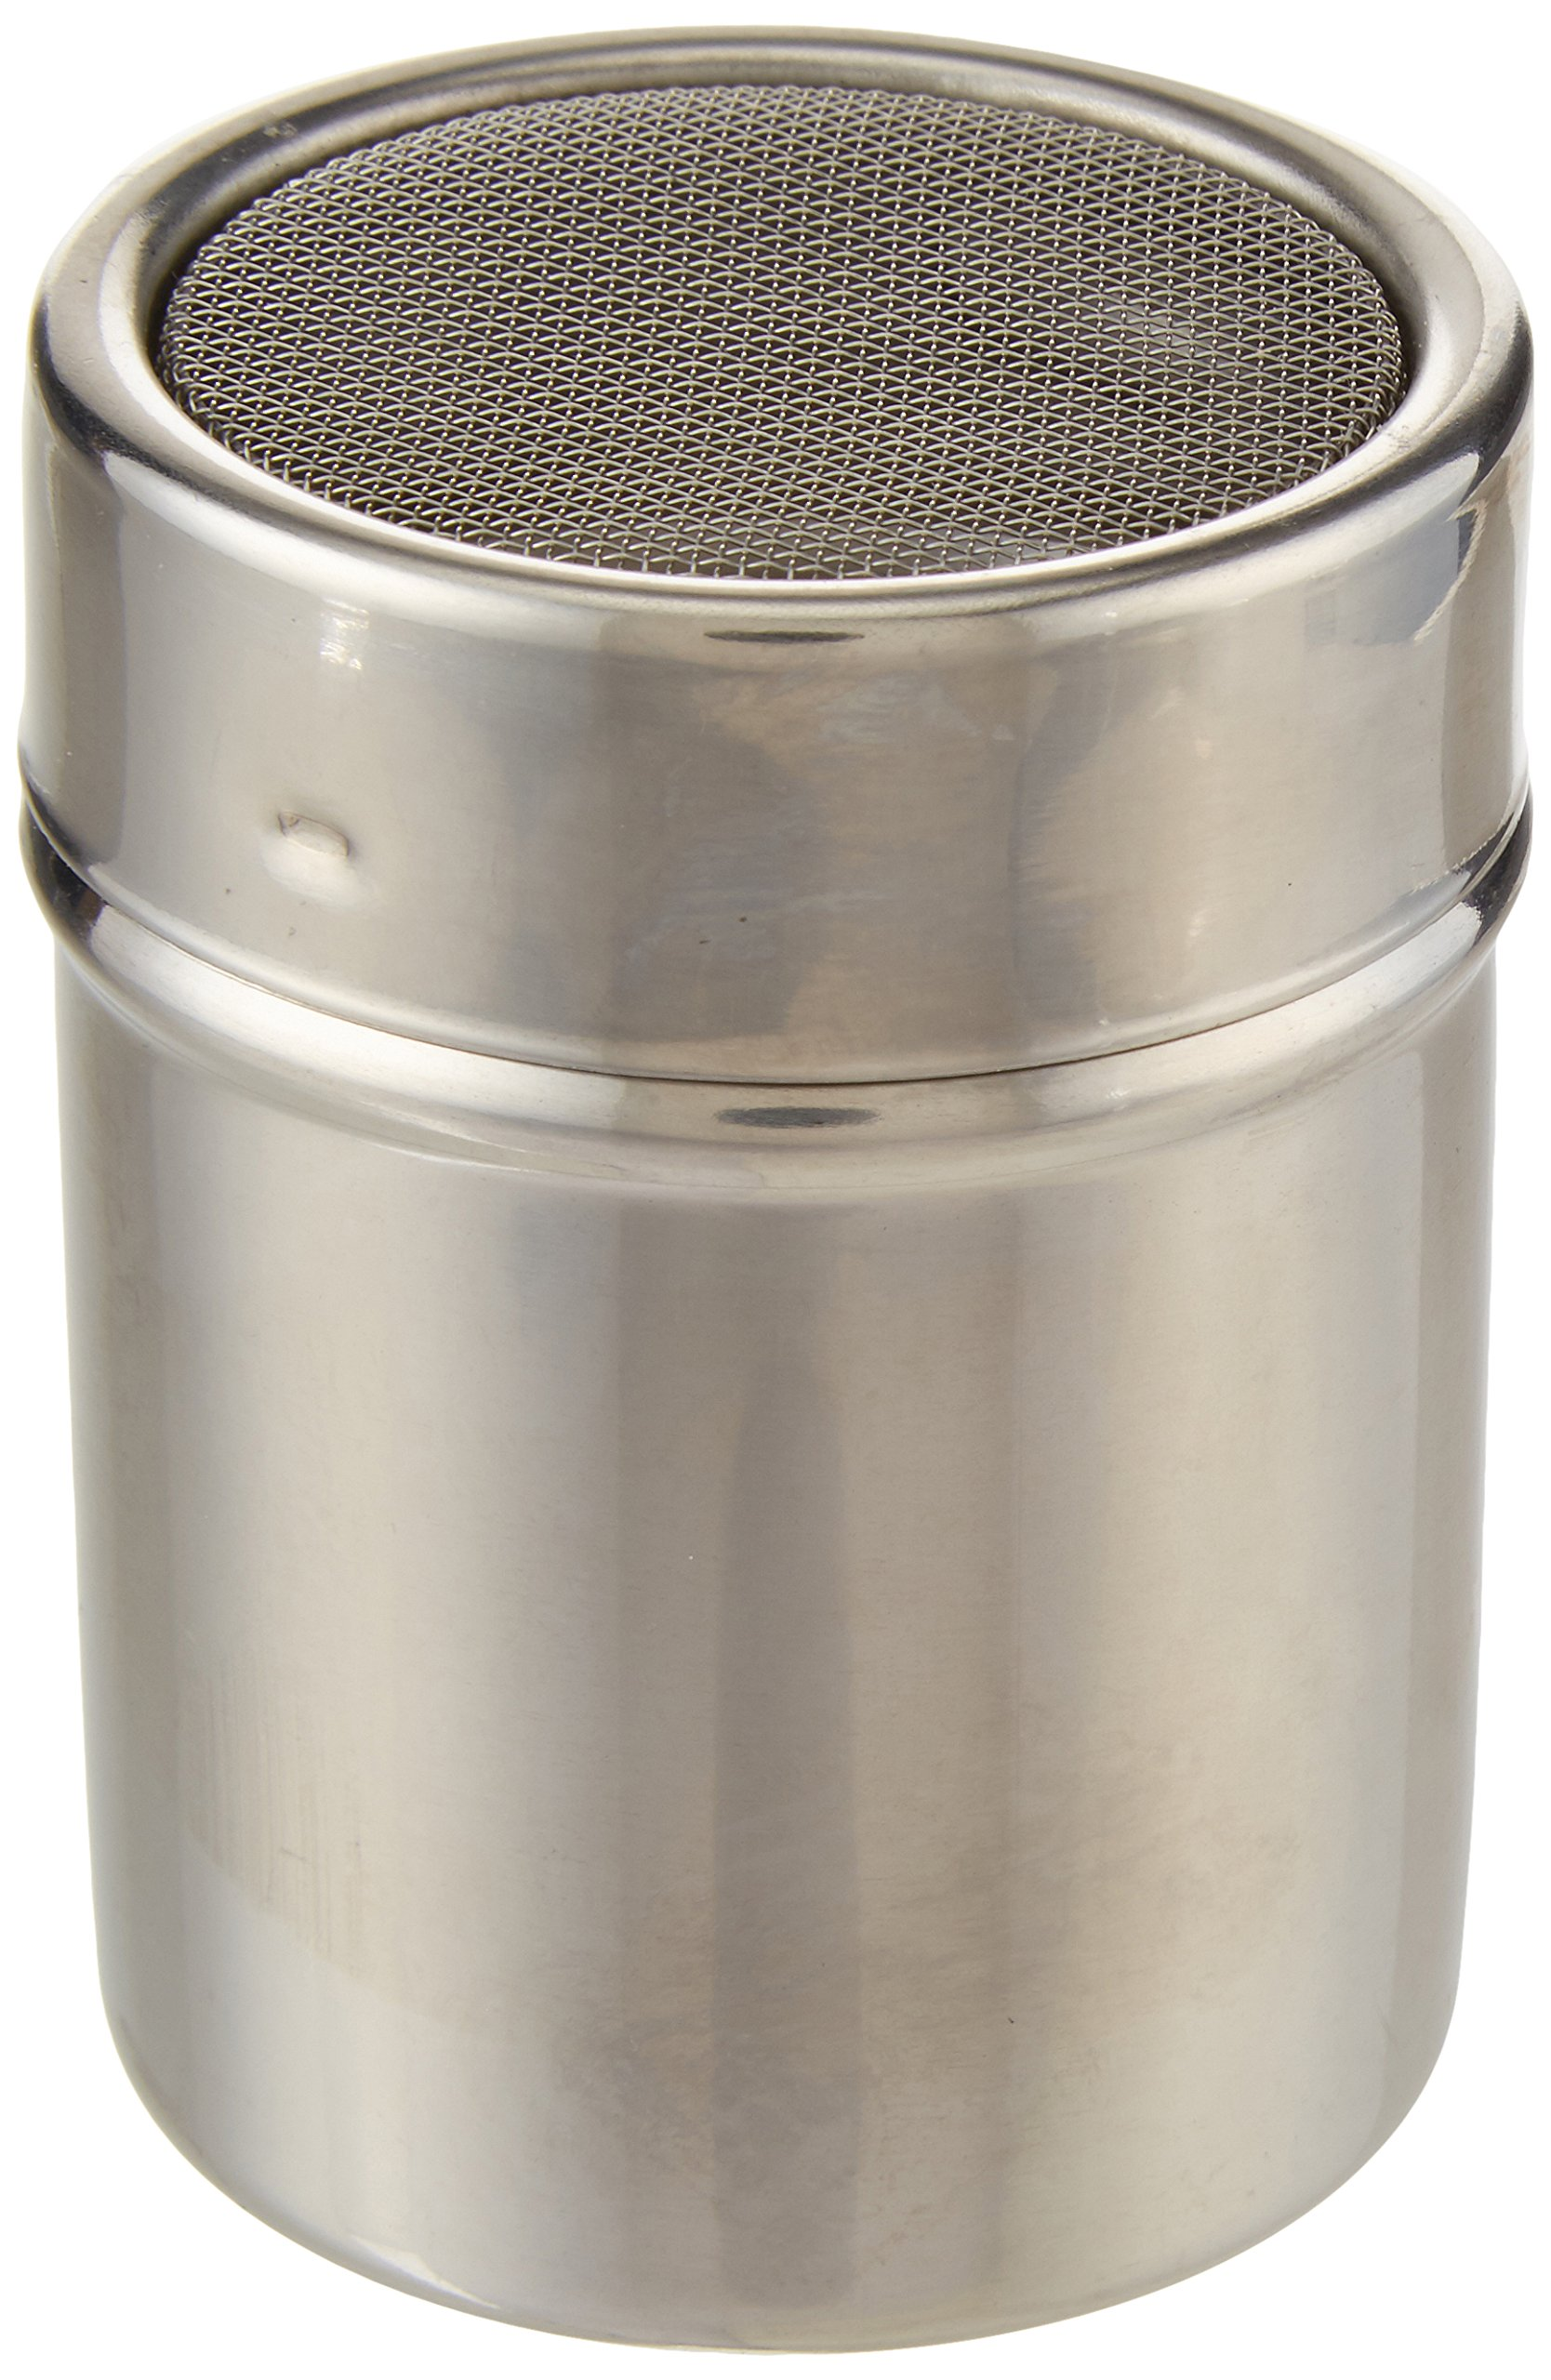 Fat Daddio's Stainless Steel Mesh Sifter/Dredger, 6-Ounce Capacity